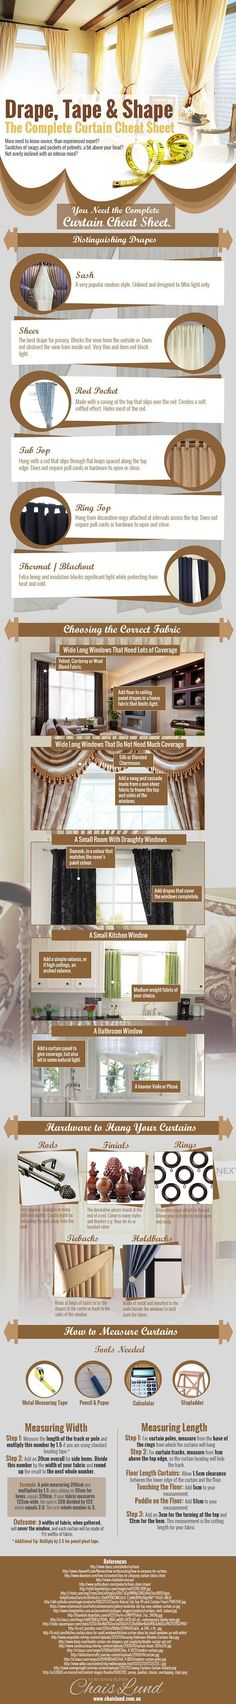 All you need to know when choosing your curtains - http://www.decorationarch.com/interior-design-ideas/all-you-need-to-know-when-choosing-your-curtains.html